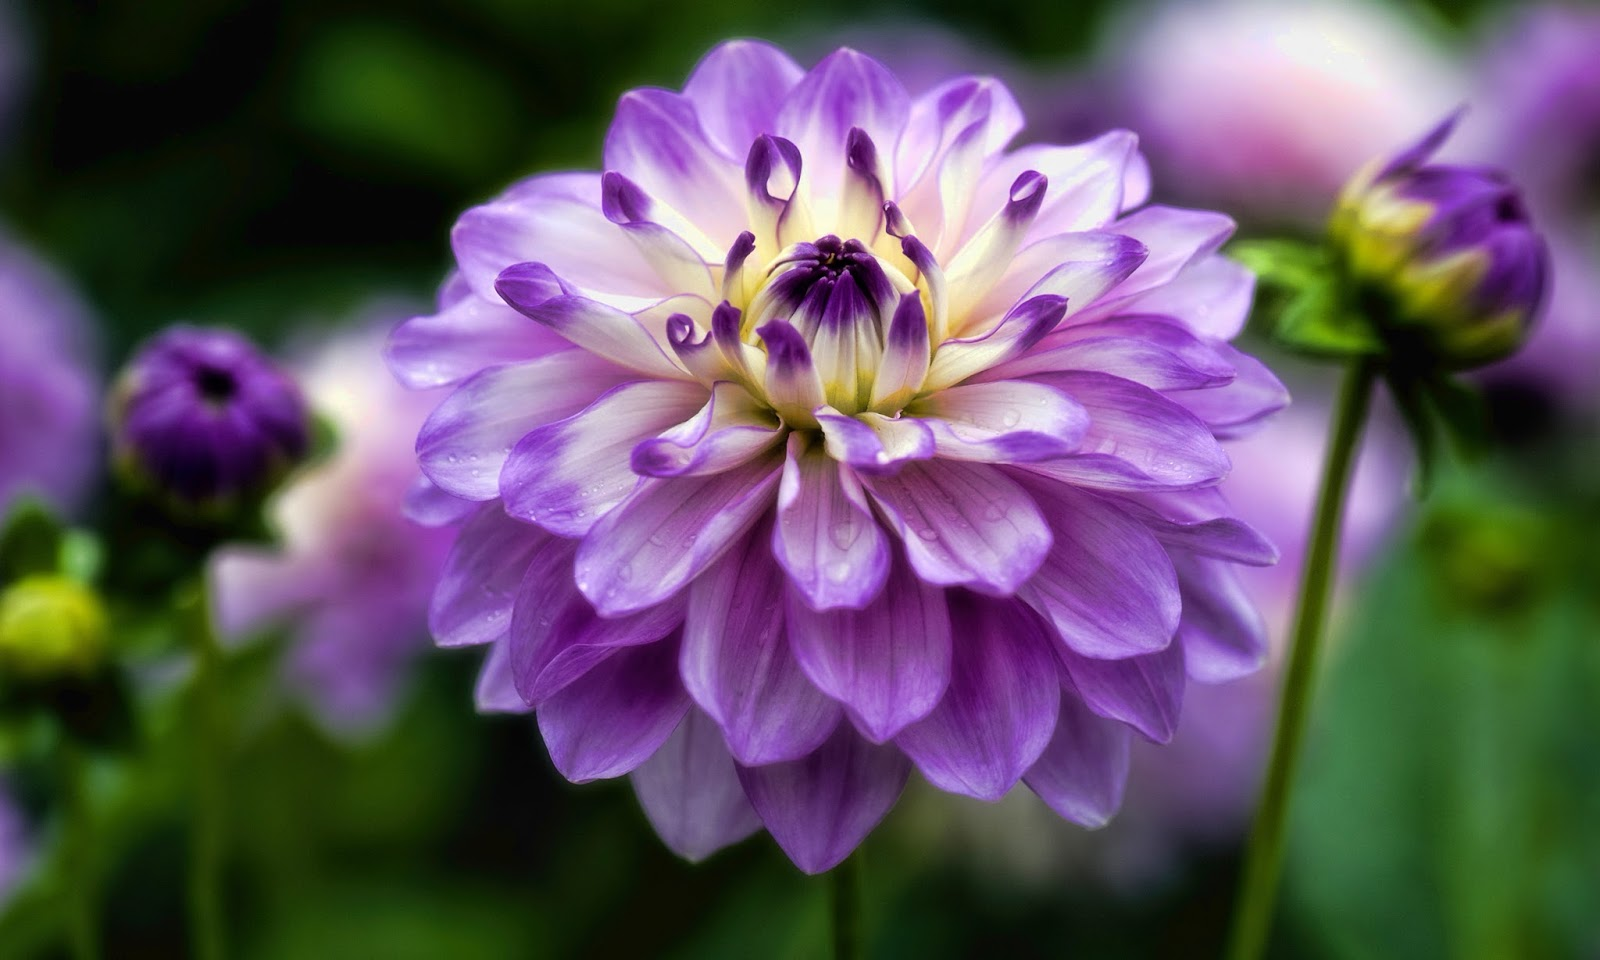 Dahlia Flower Pin Dahlia Flower Wallpaper On Pinterest